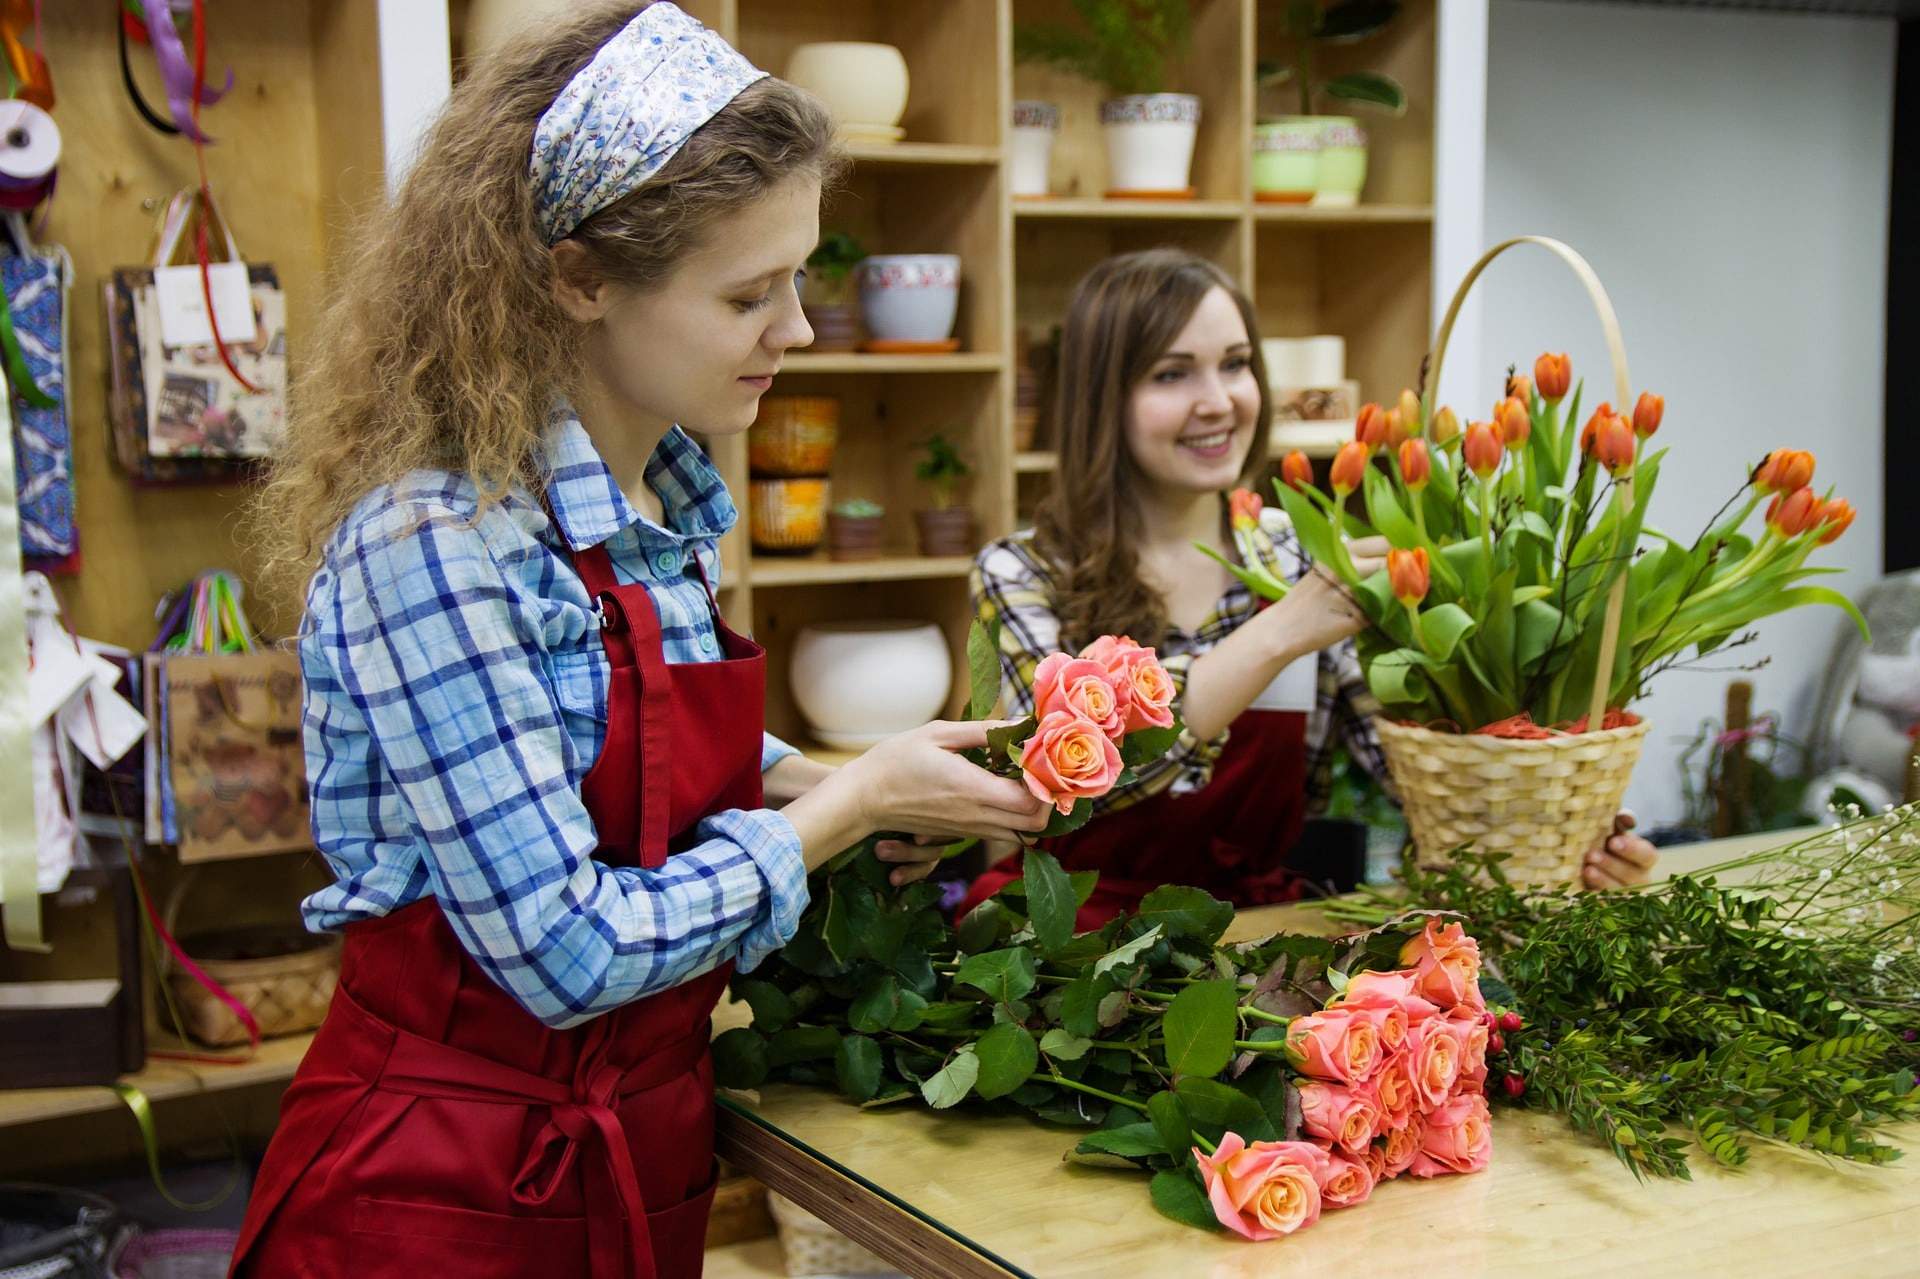 business plan flower shop Pre-written flower shop business plan and fully automated financials to write a professional flower shop business plan.